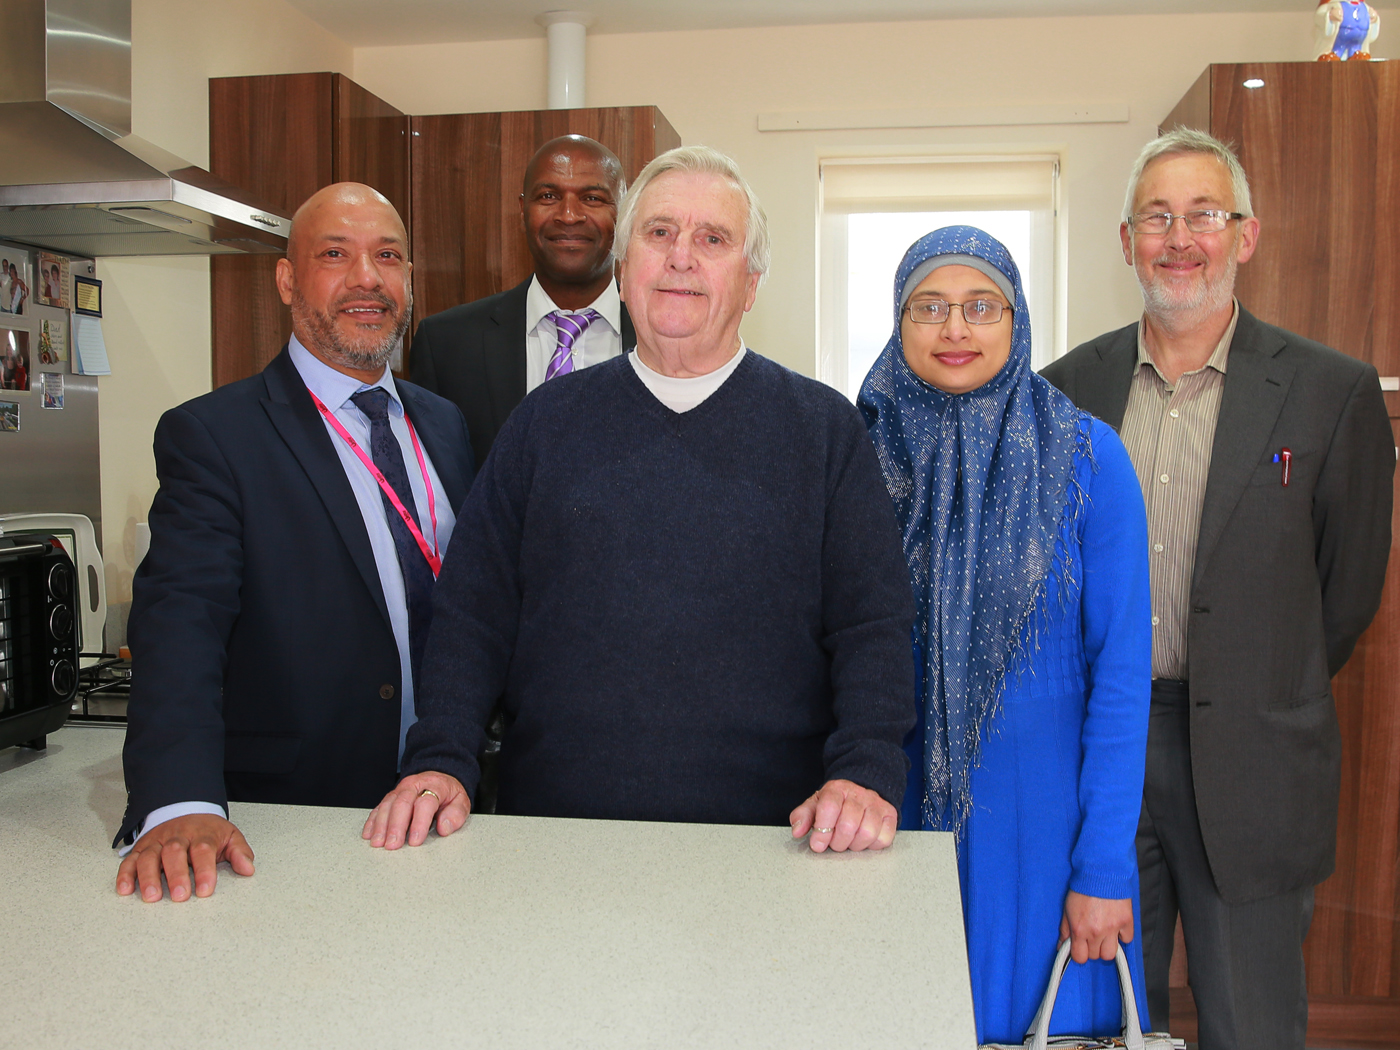 Ray Smith (centre) pictured in his new Stratford Court property with (from left to right) Unity's chief executive Ali Akbor, director of regeneration Wayne Noteman, board member   Shazia   Khan and   Leeds City Council  's   executive member for regeneration, transport and planning   Cllr Richard Lewis